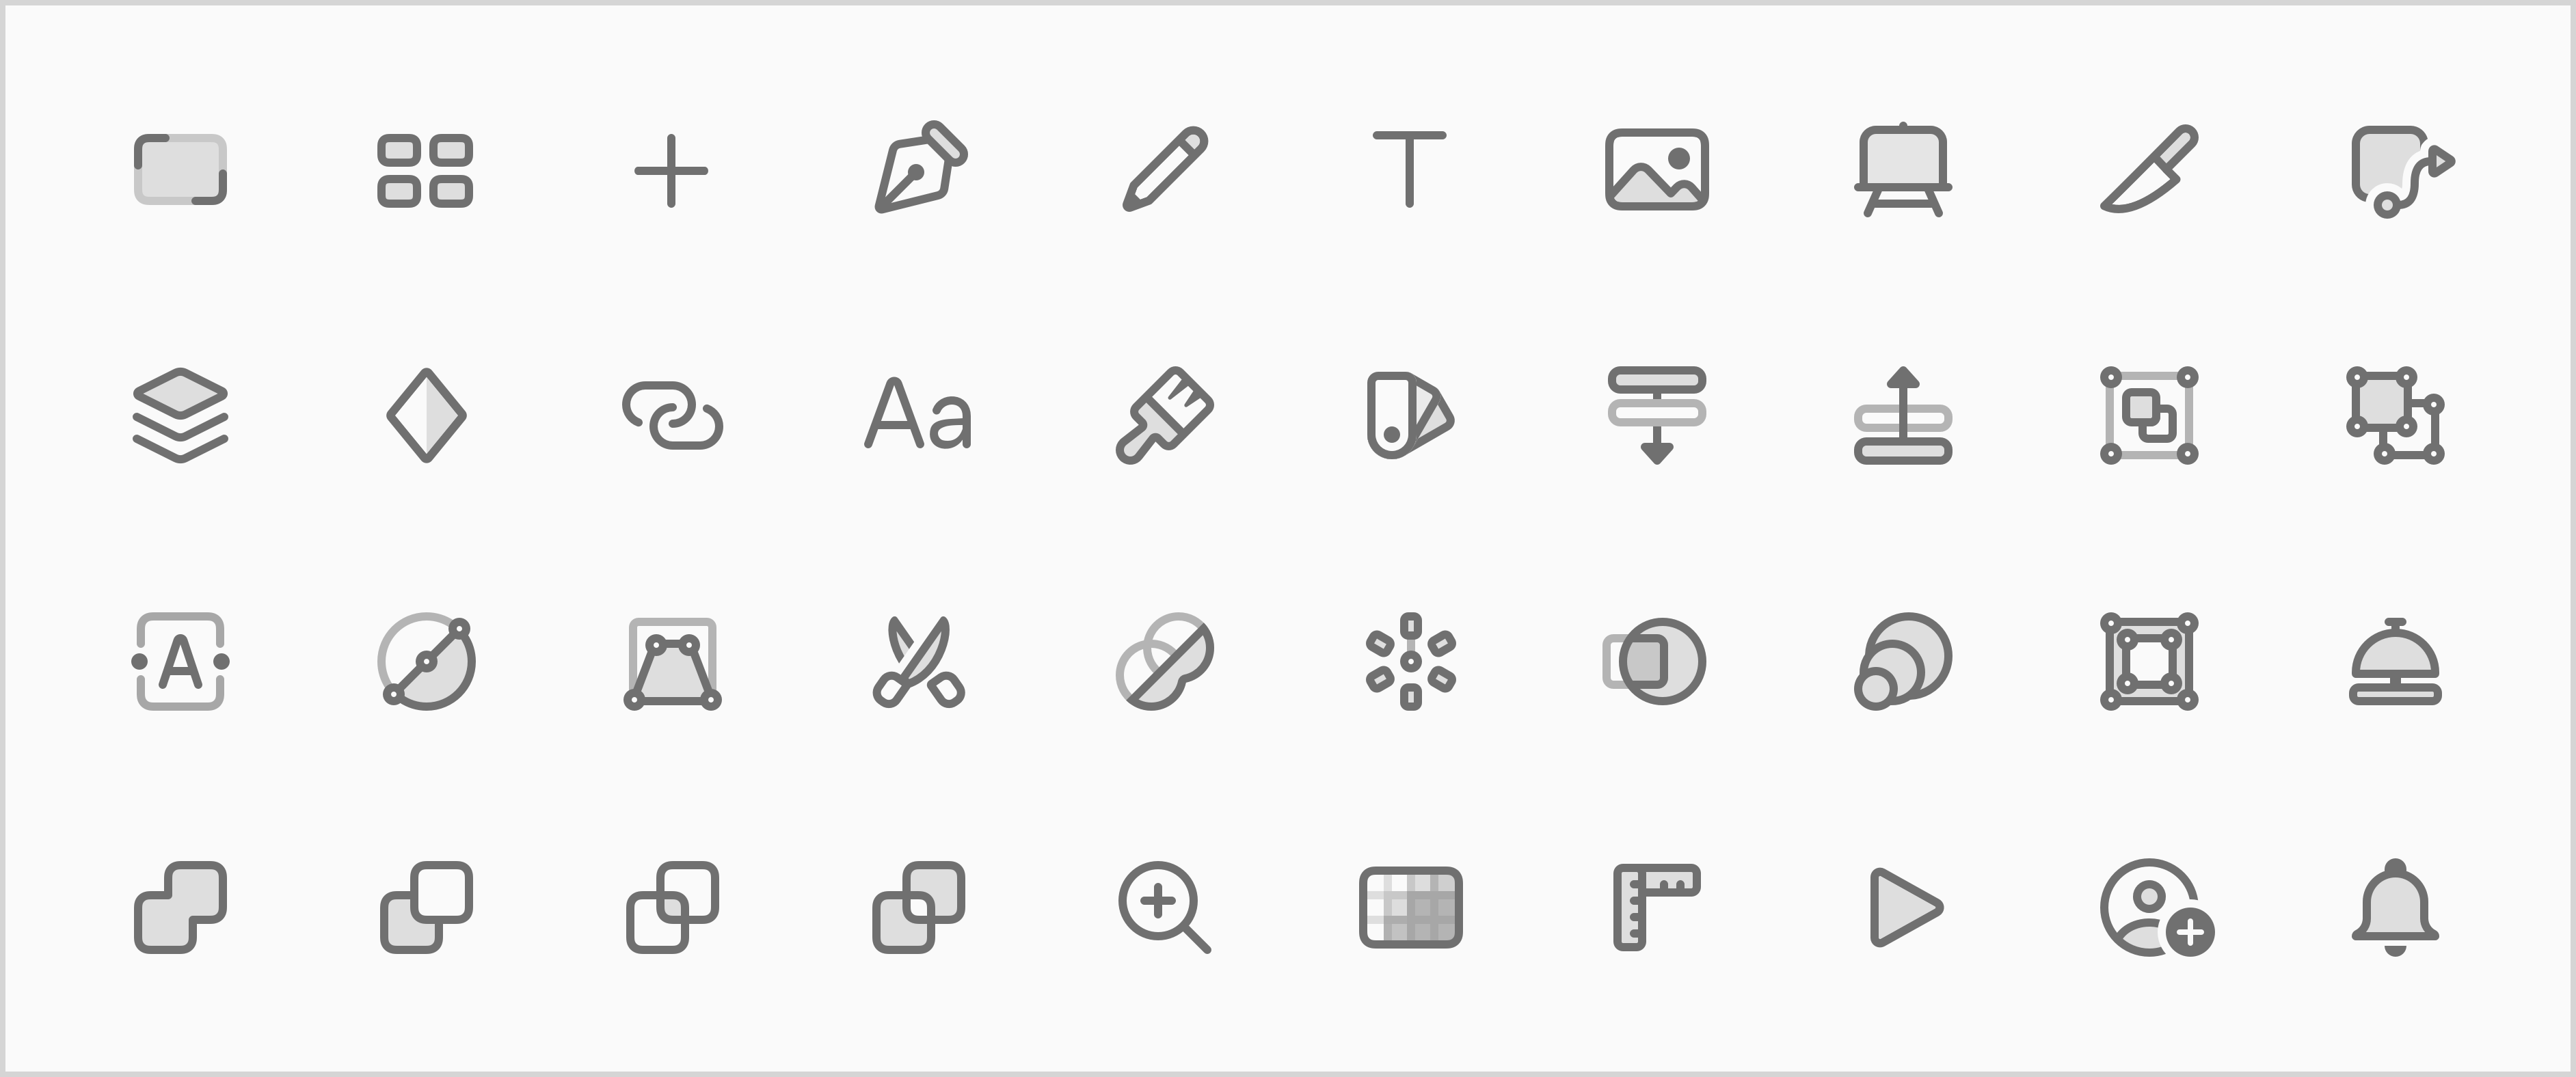 An image showing a grid of many of the finished toolbar icons.